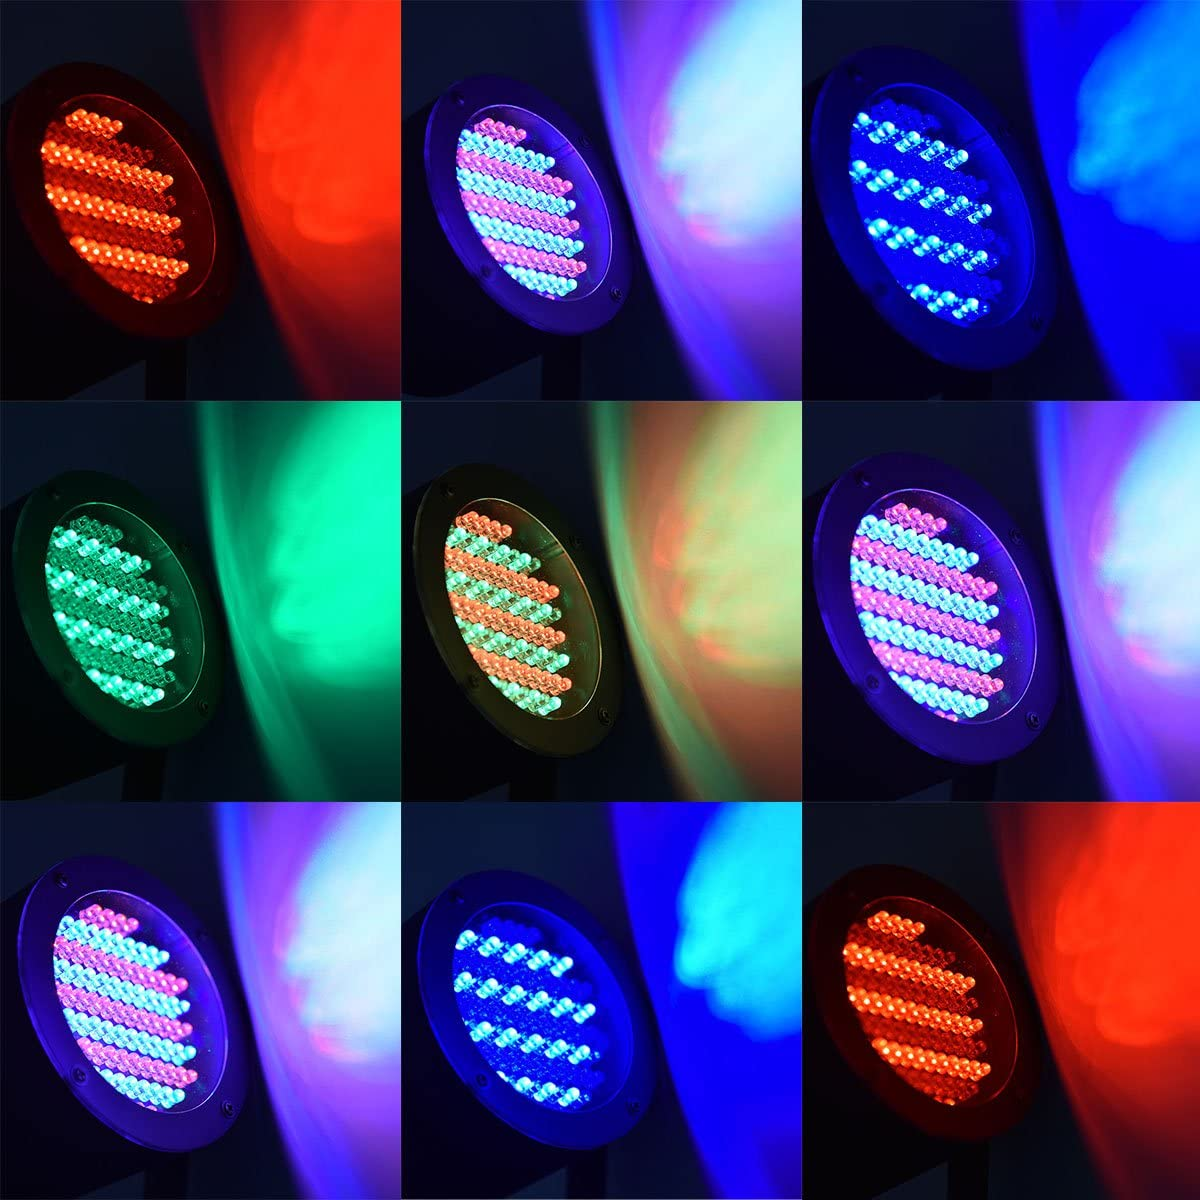 Sound-activated DMX Controlled LED Lighting for Wedding Event COSTWAY 2 pcs 86 x 25W RGB Stage Lights with Multiple Color Modes Party Celebration